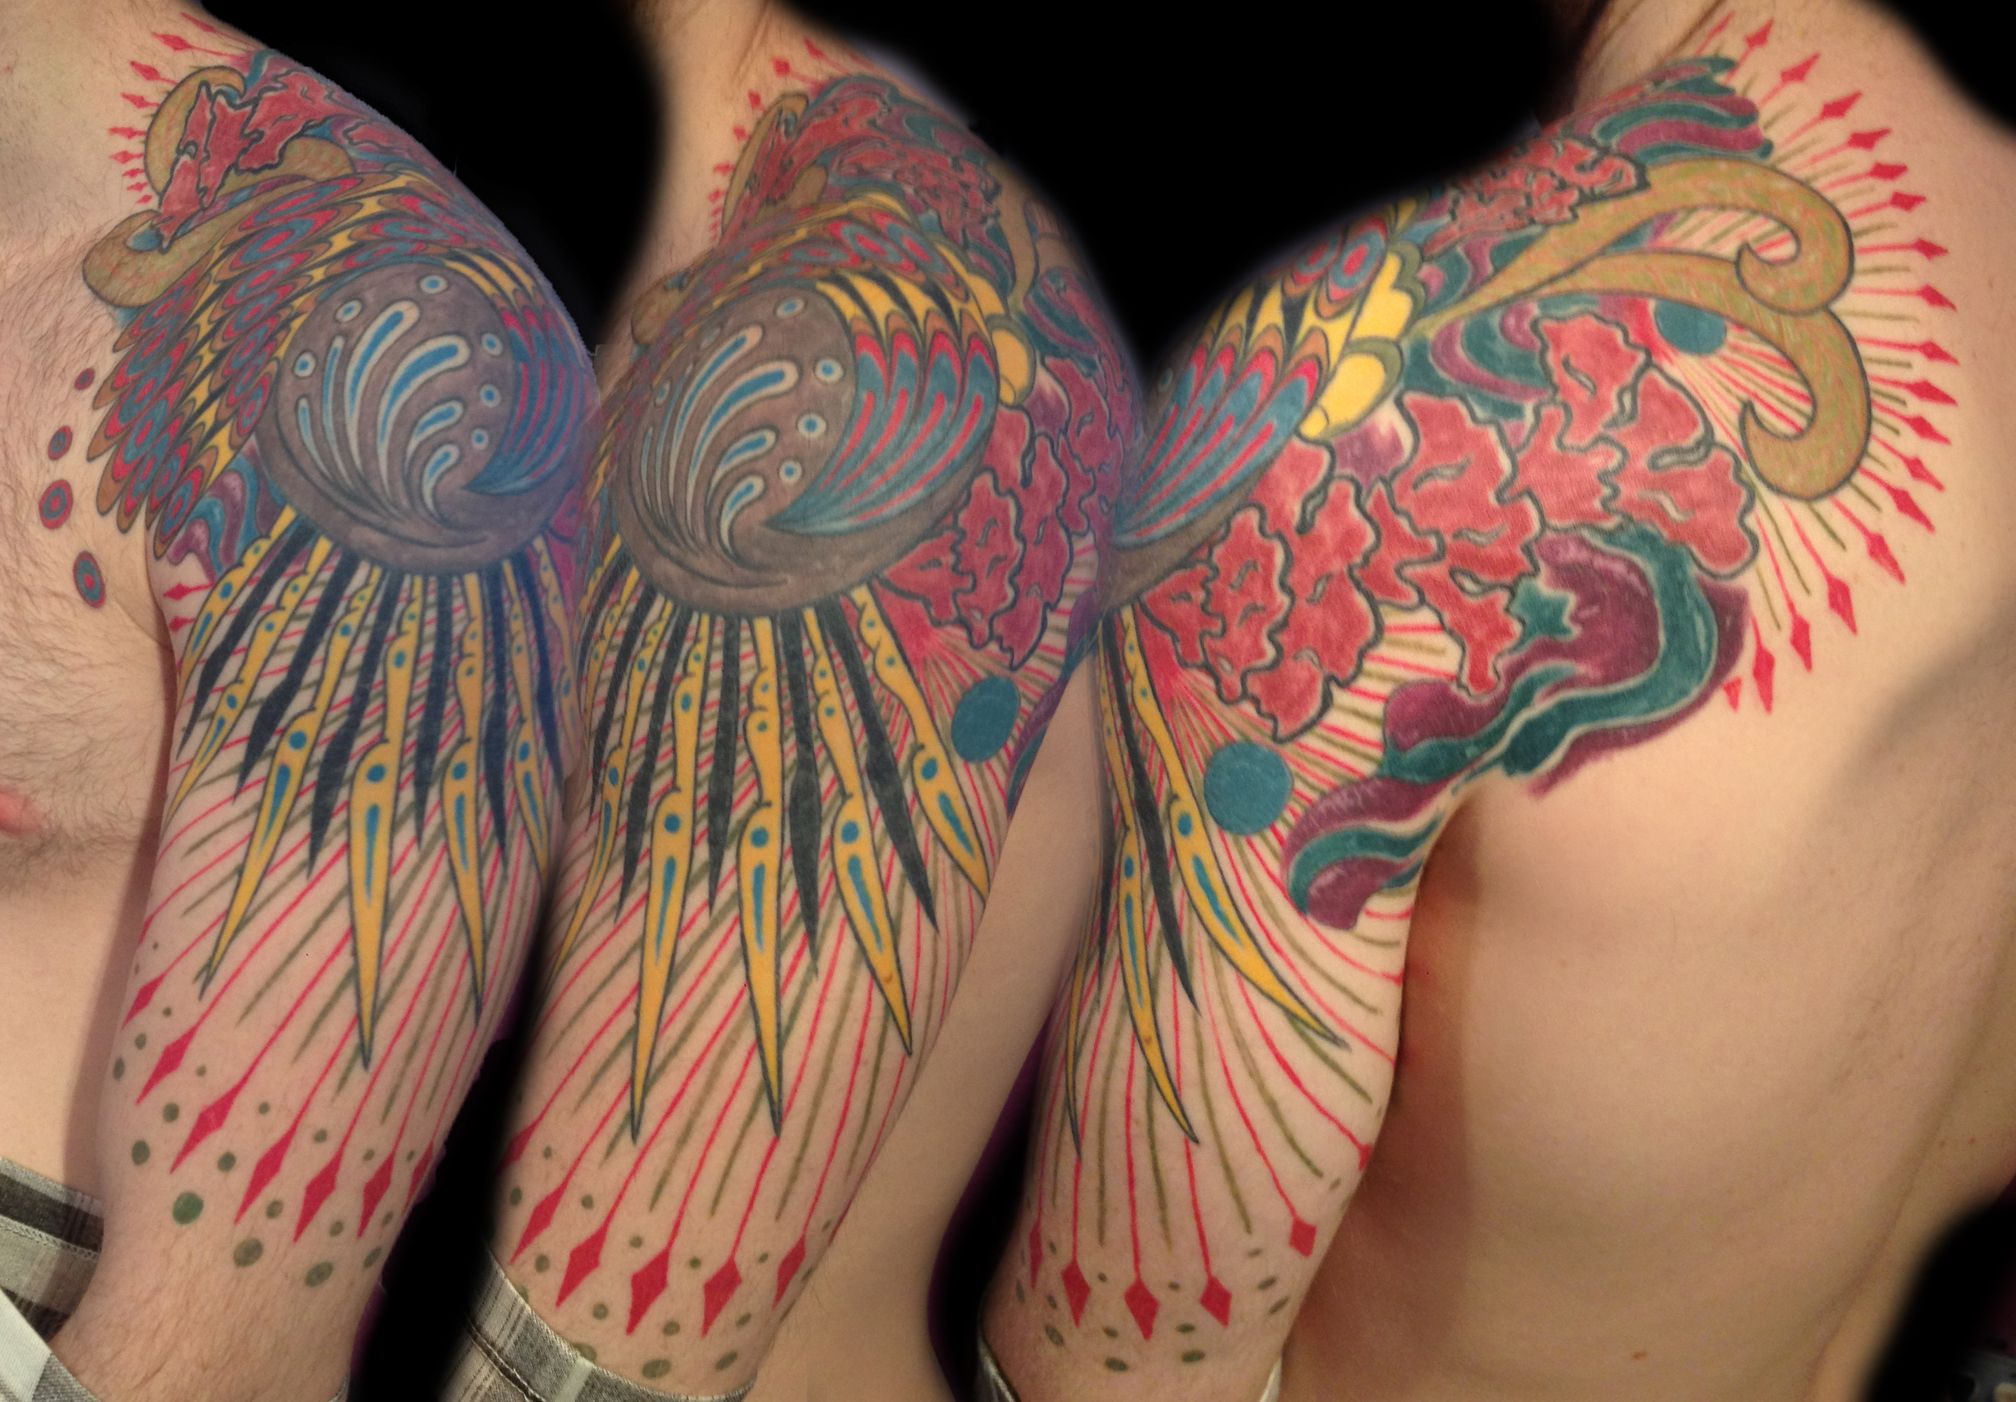 Admirable Fractal Psychedelic Tattoos Majestic Tattoo Nyc Trippy Short Hairstyles Gunalazisus